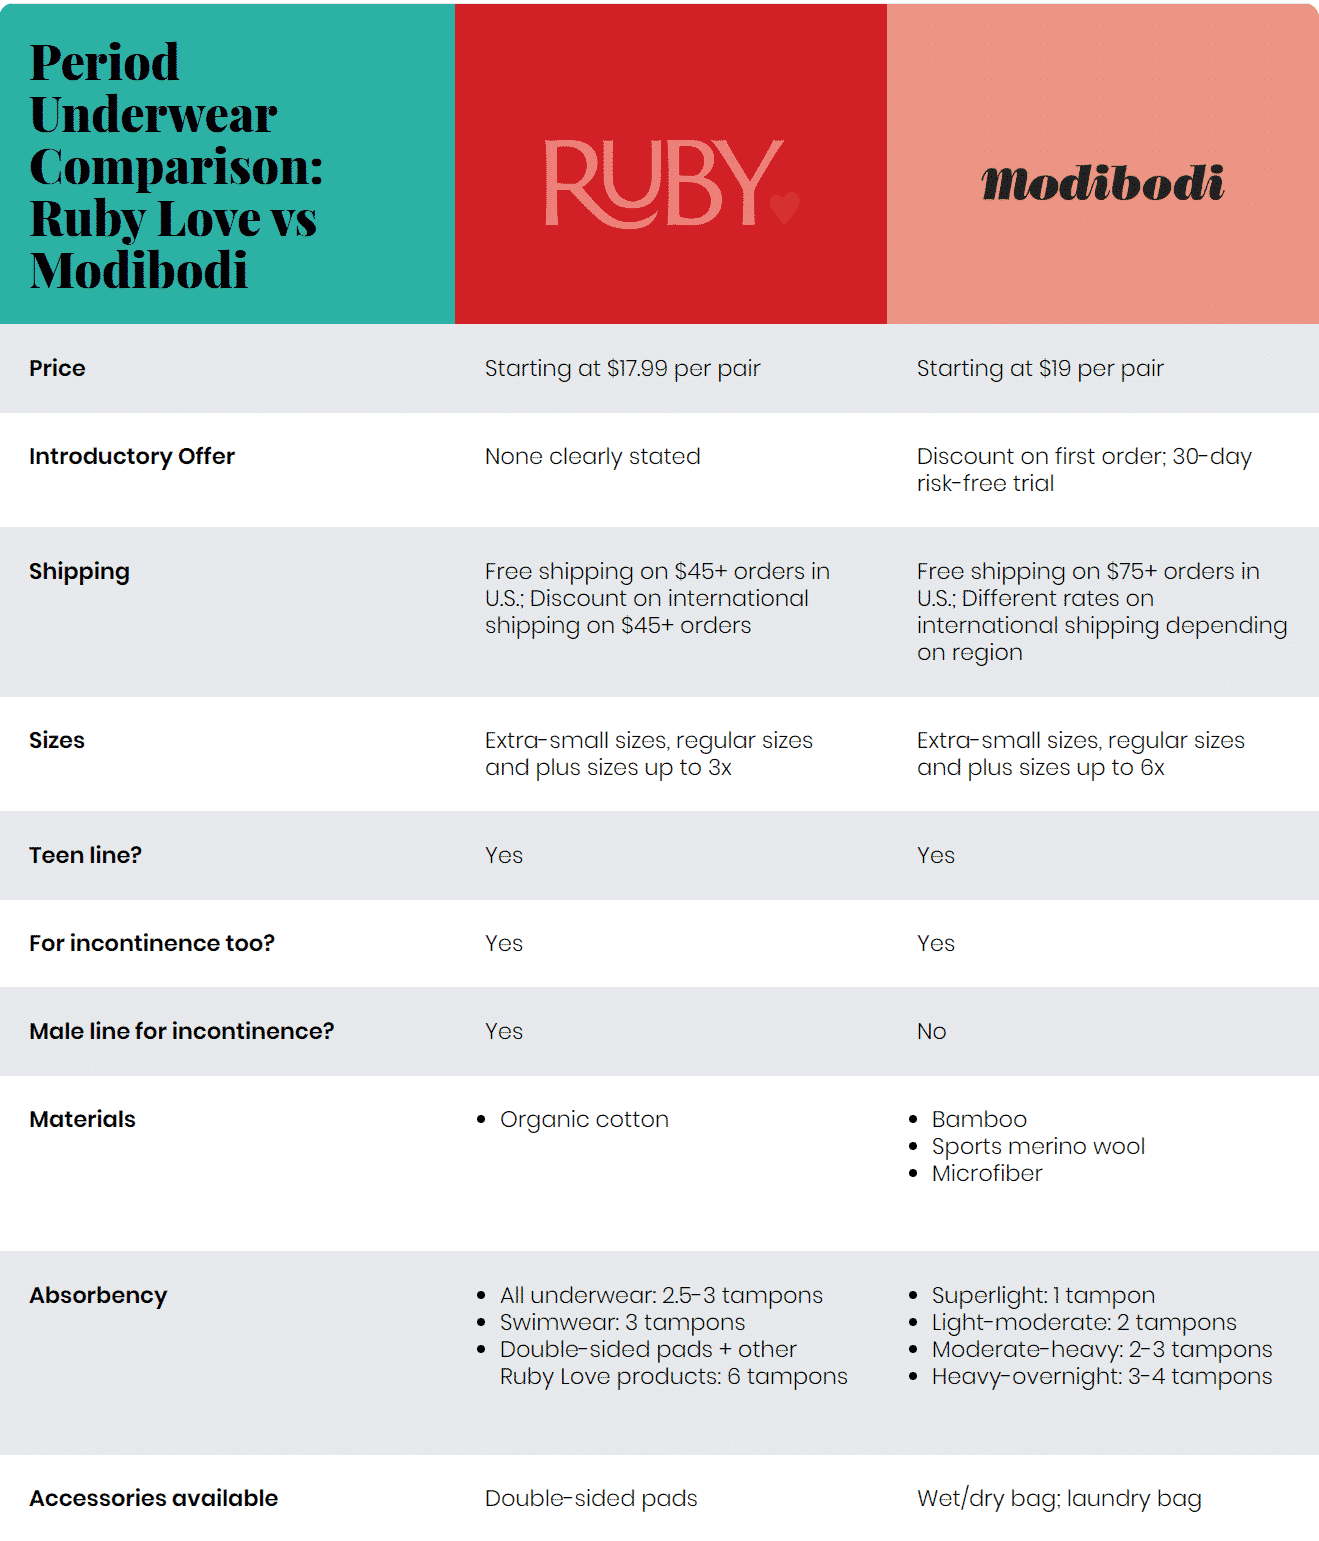 Period Underwear Comparison: Ruby Love vs Modibodi